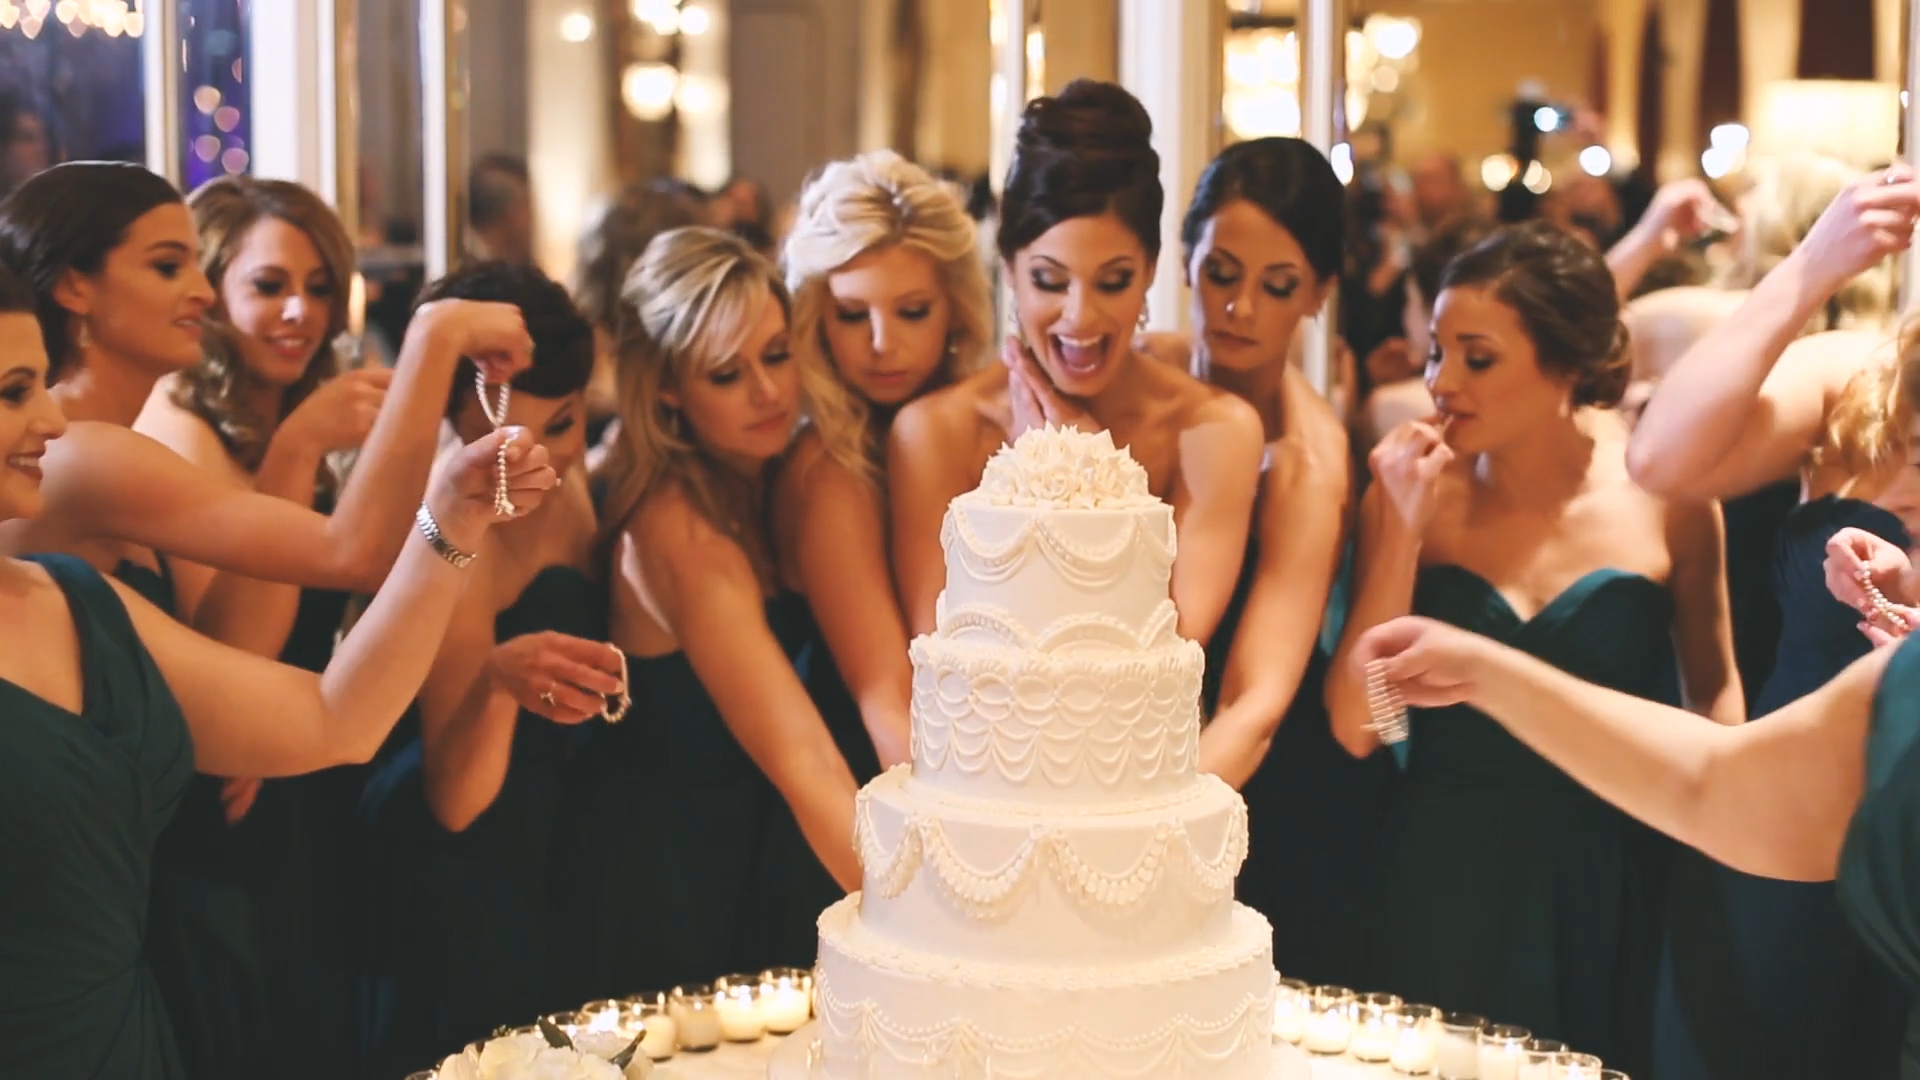 Cake pulls are such a fun tradition for the Bride and her girlfriends.